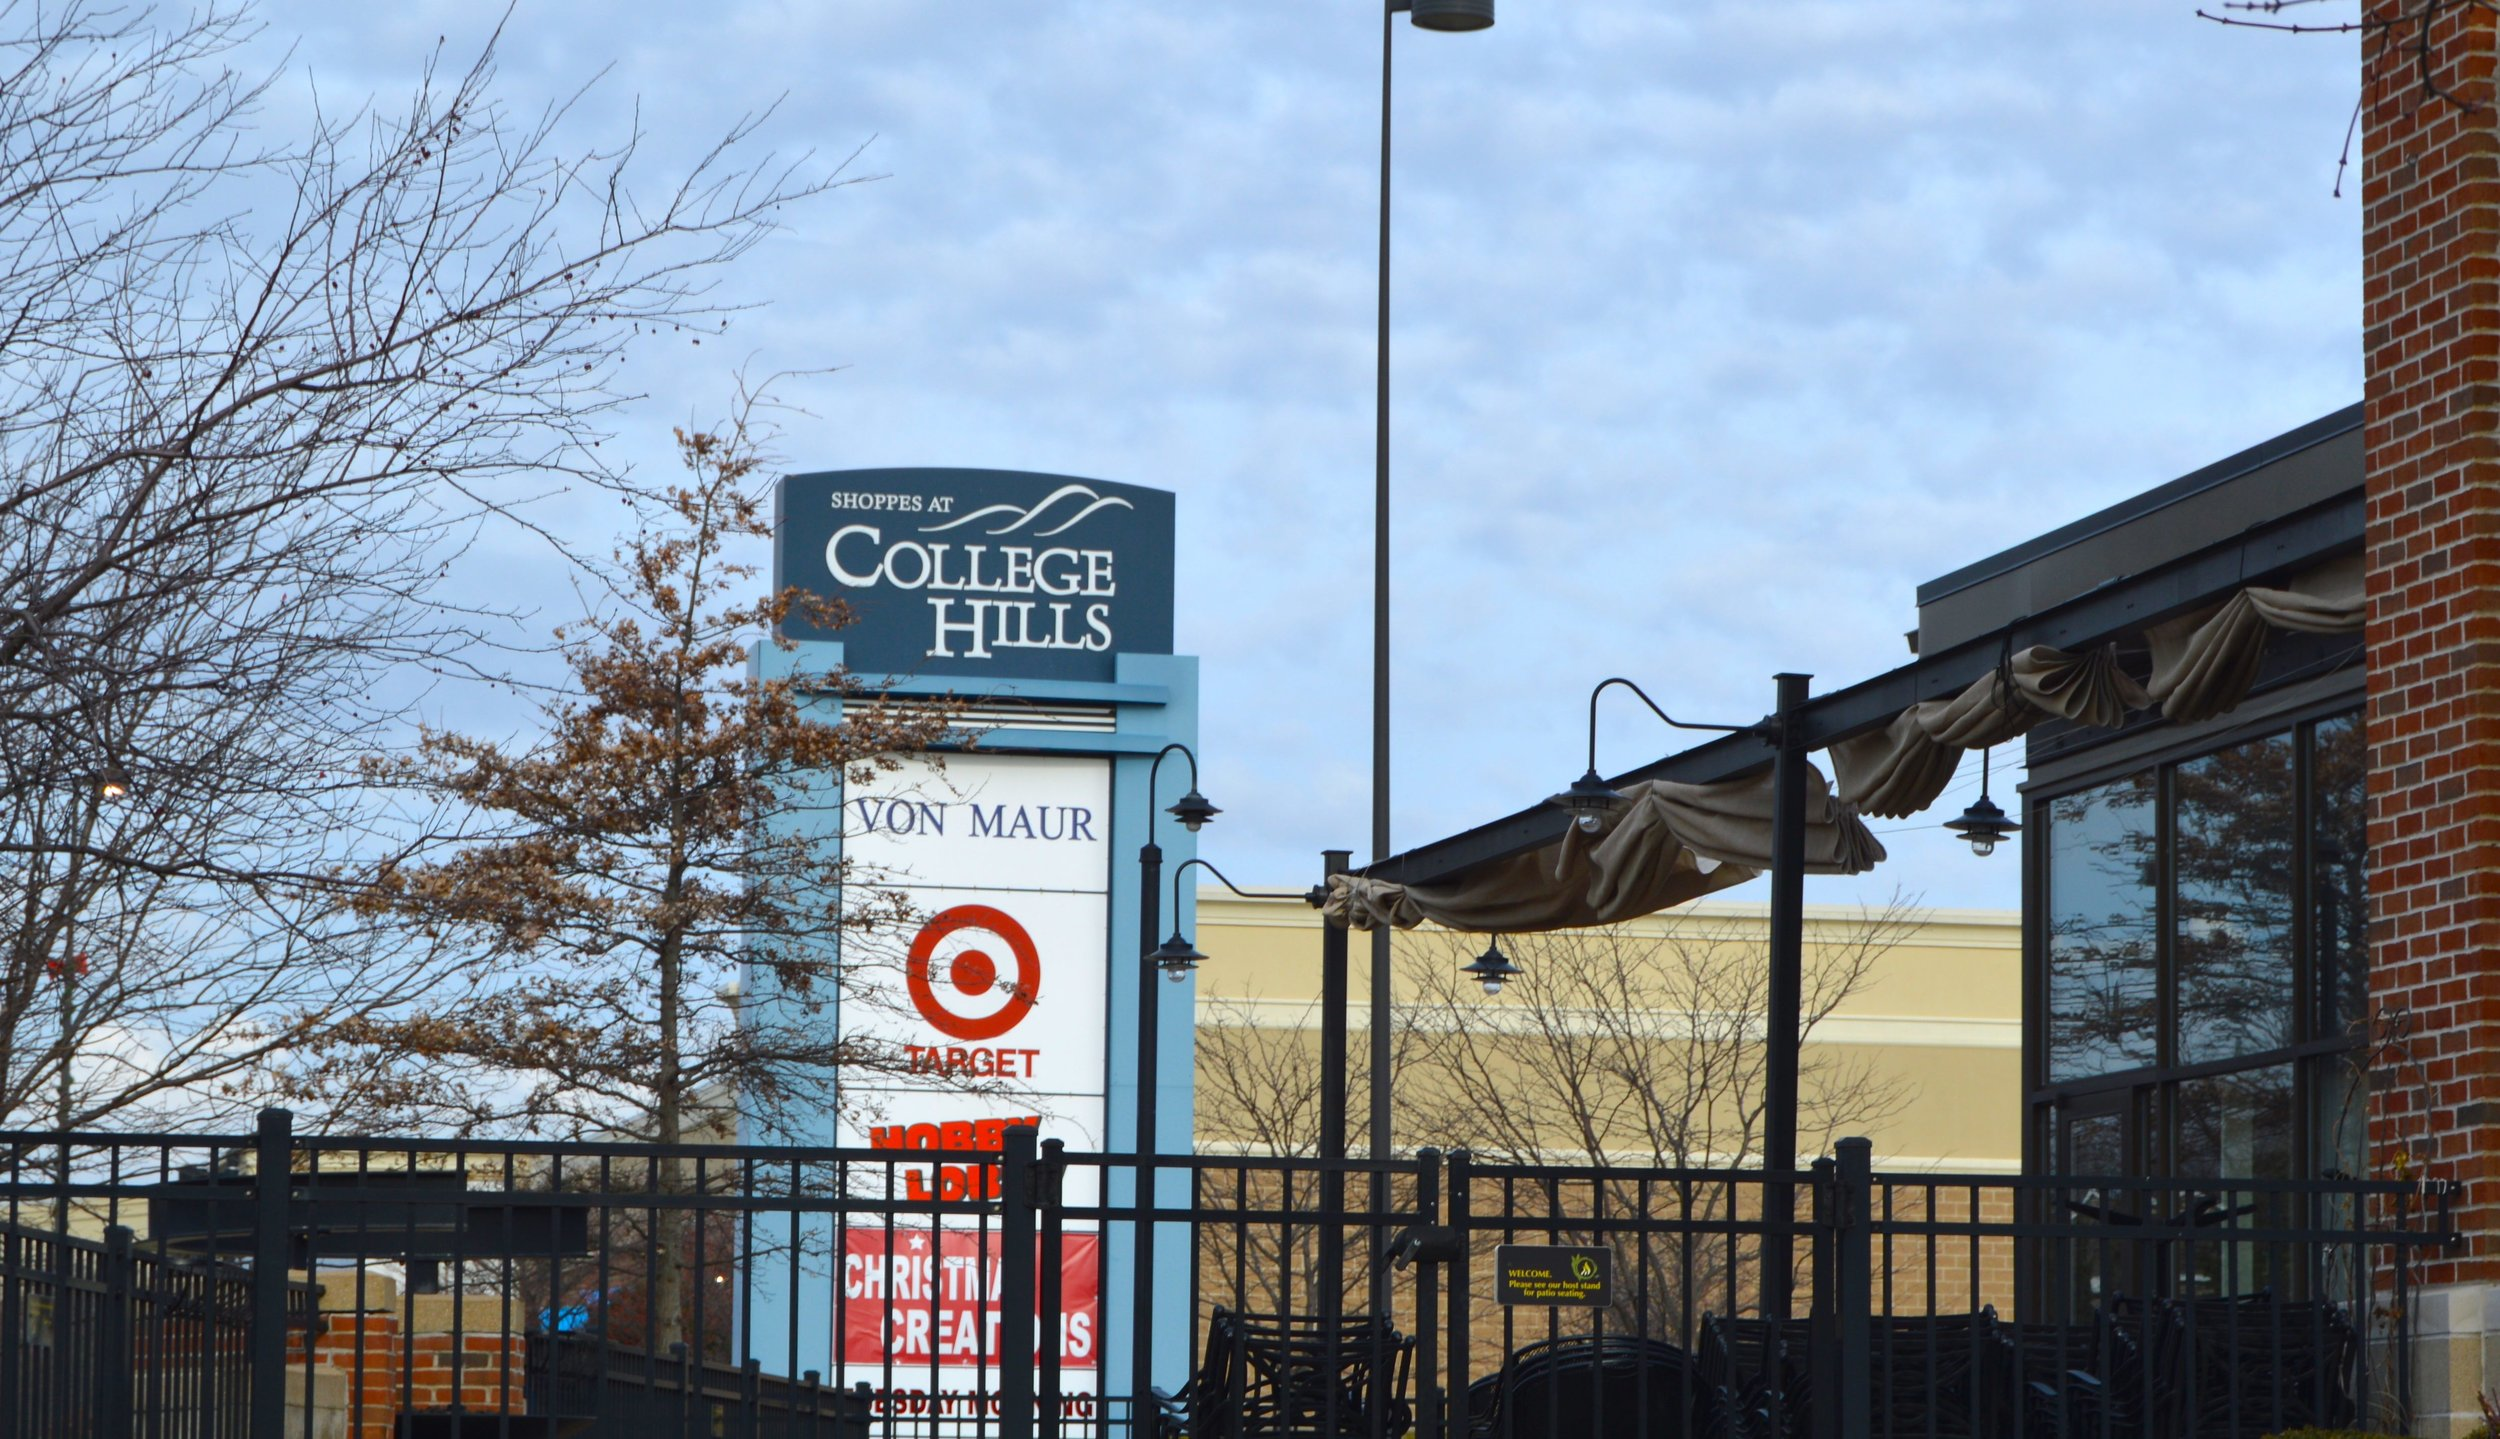 The Shoppes at College Hills was acquired in January 2017 -